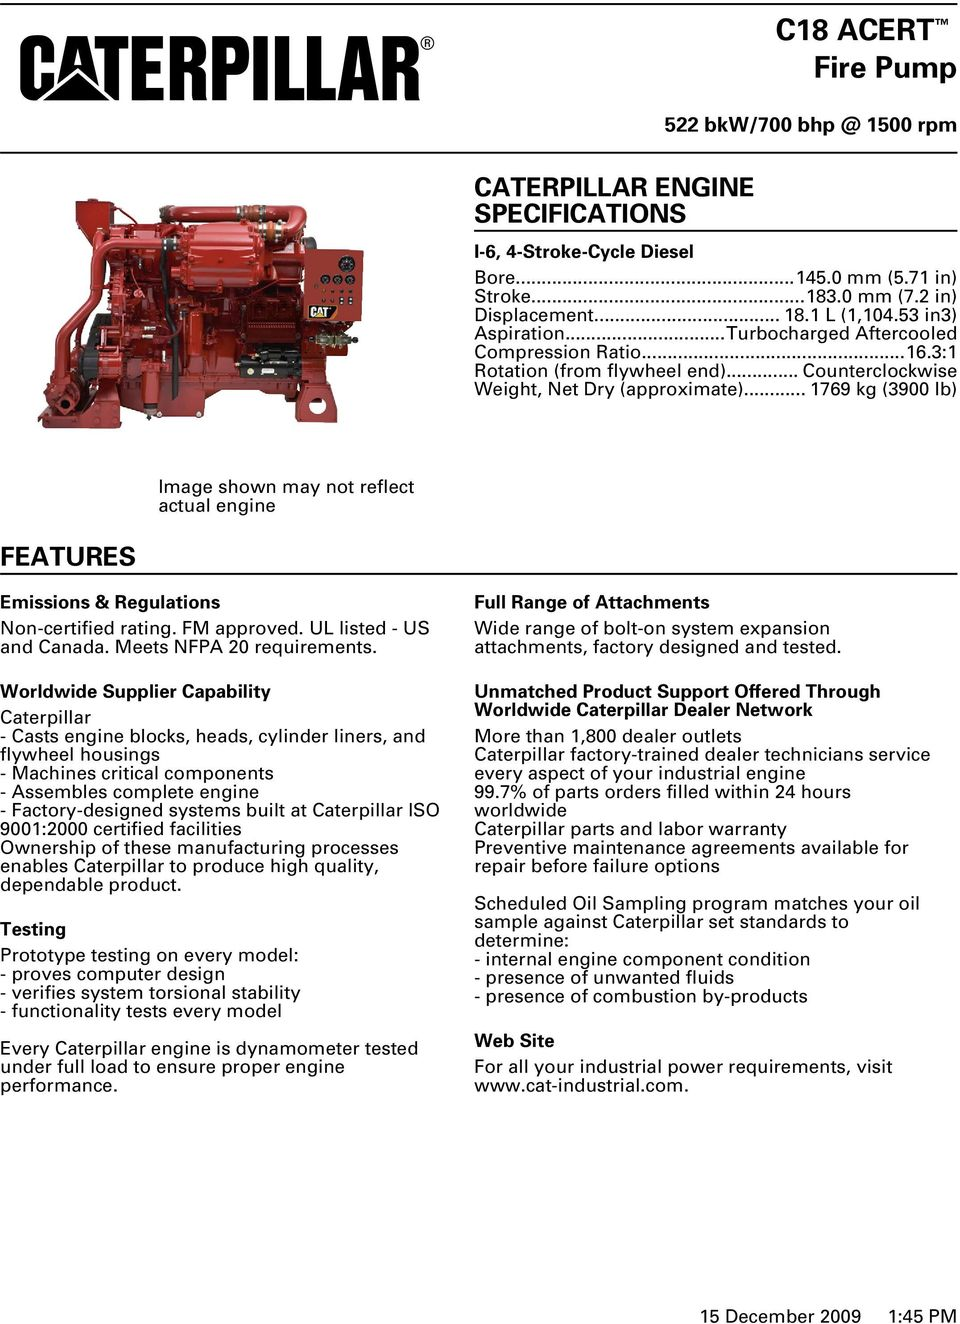 C18 ACERT Fire Pump CATERPILLAR ENGINE SPECIFICATIONS